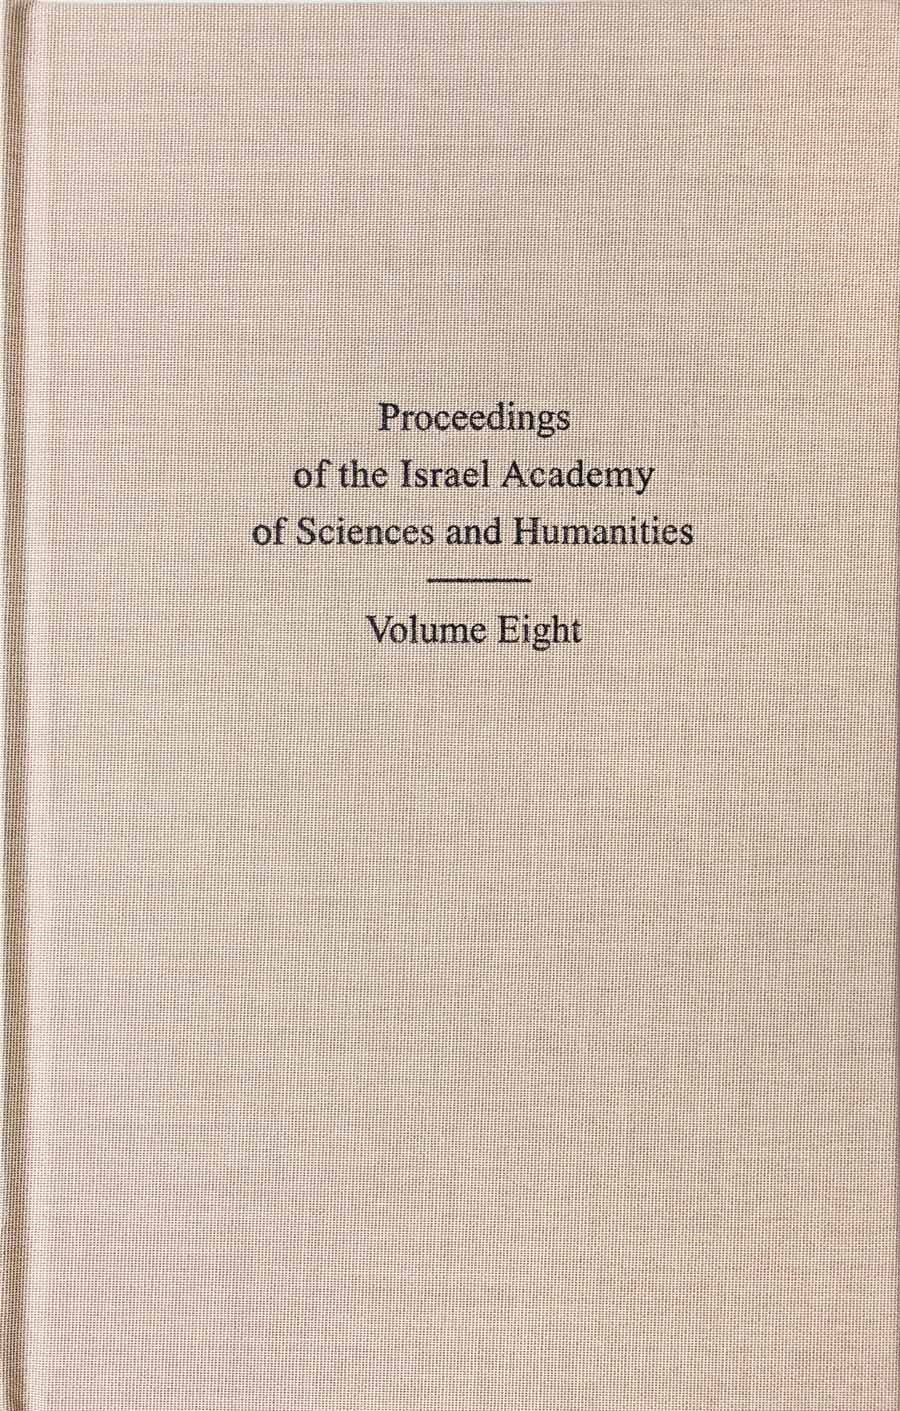 Proceedings of the Israel Academy of Sciences and Humanities (English series), Volume VIII